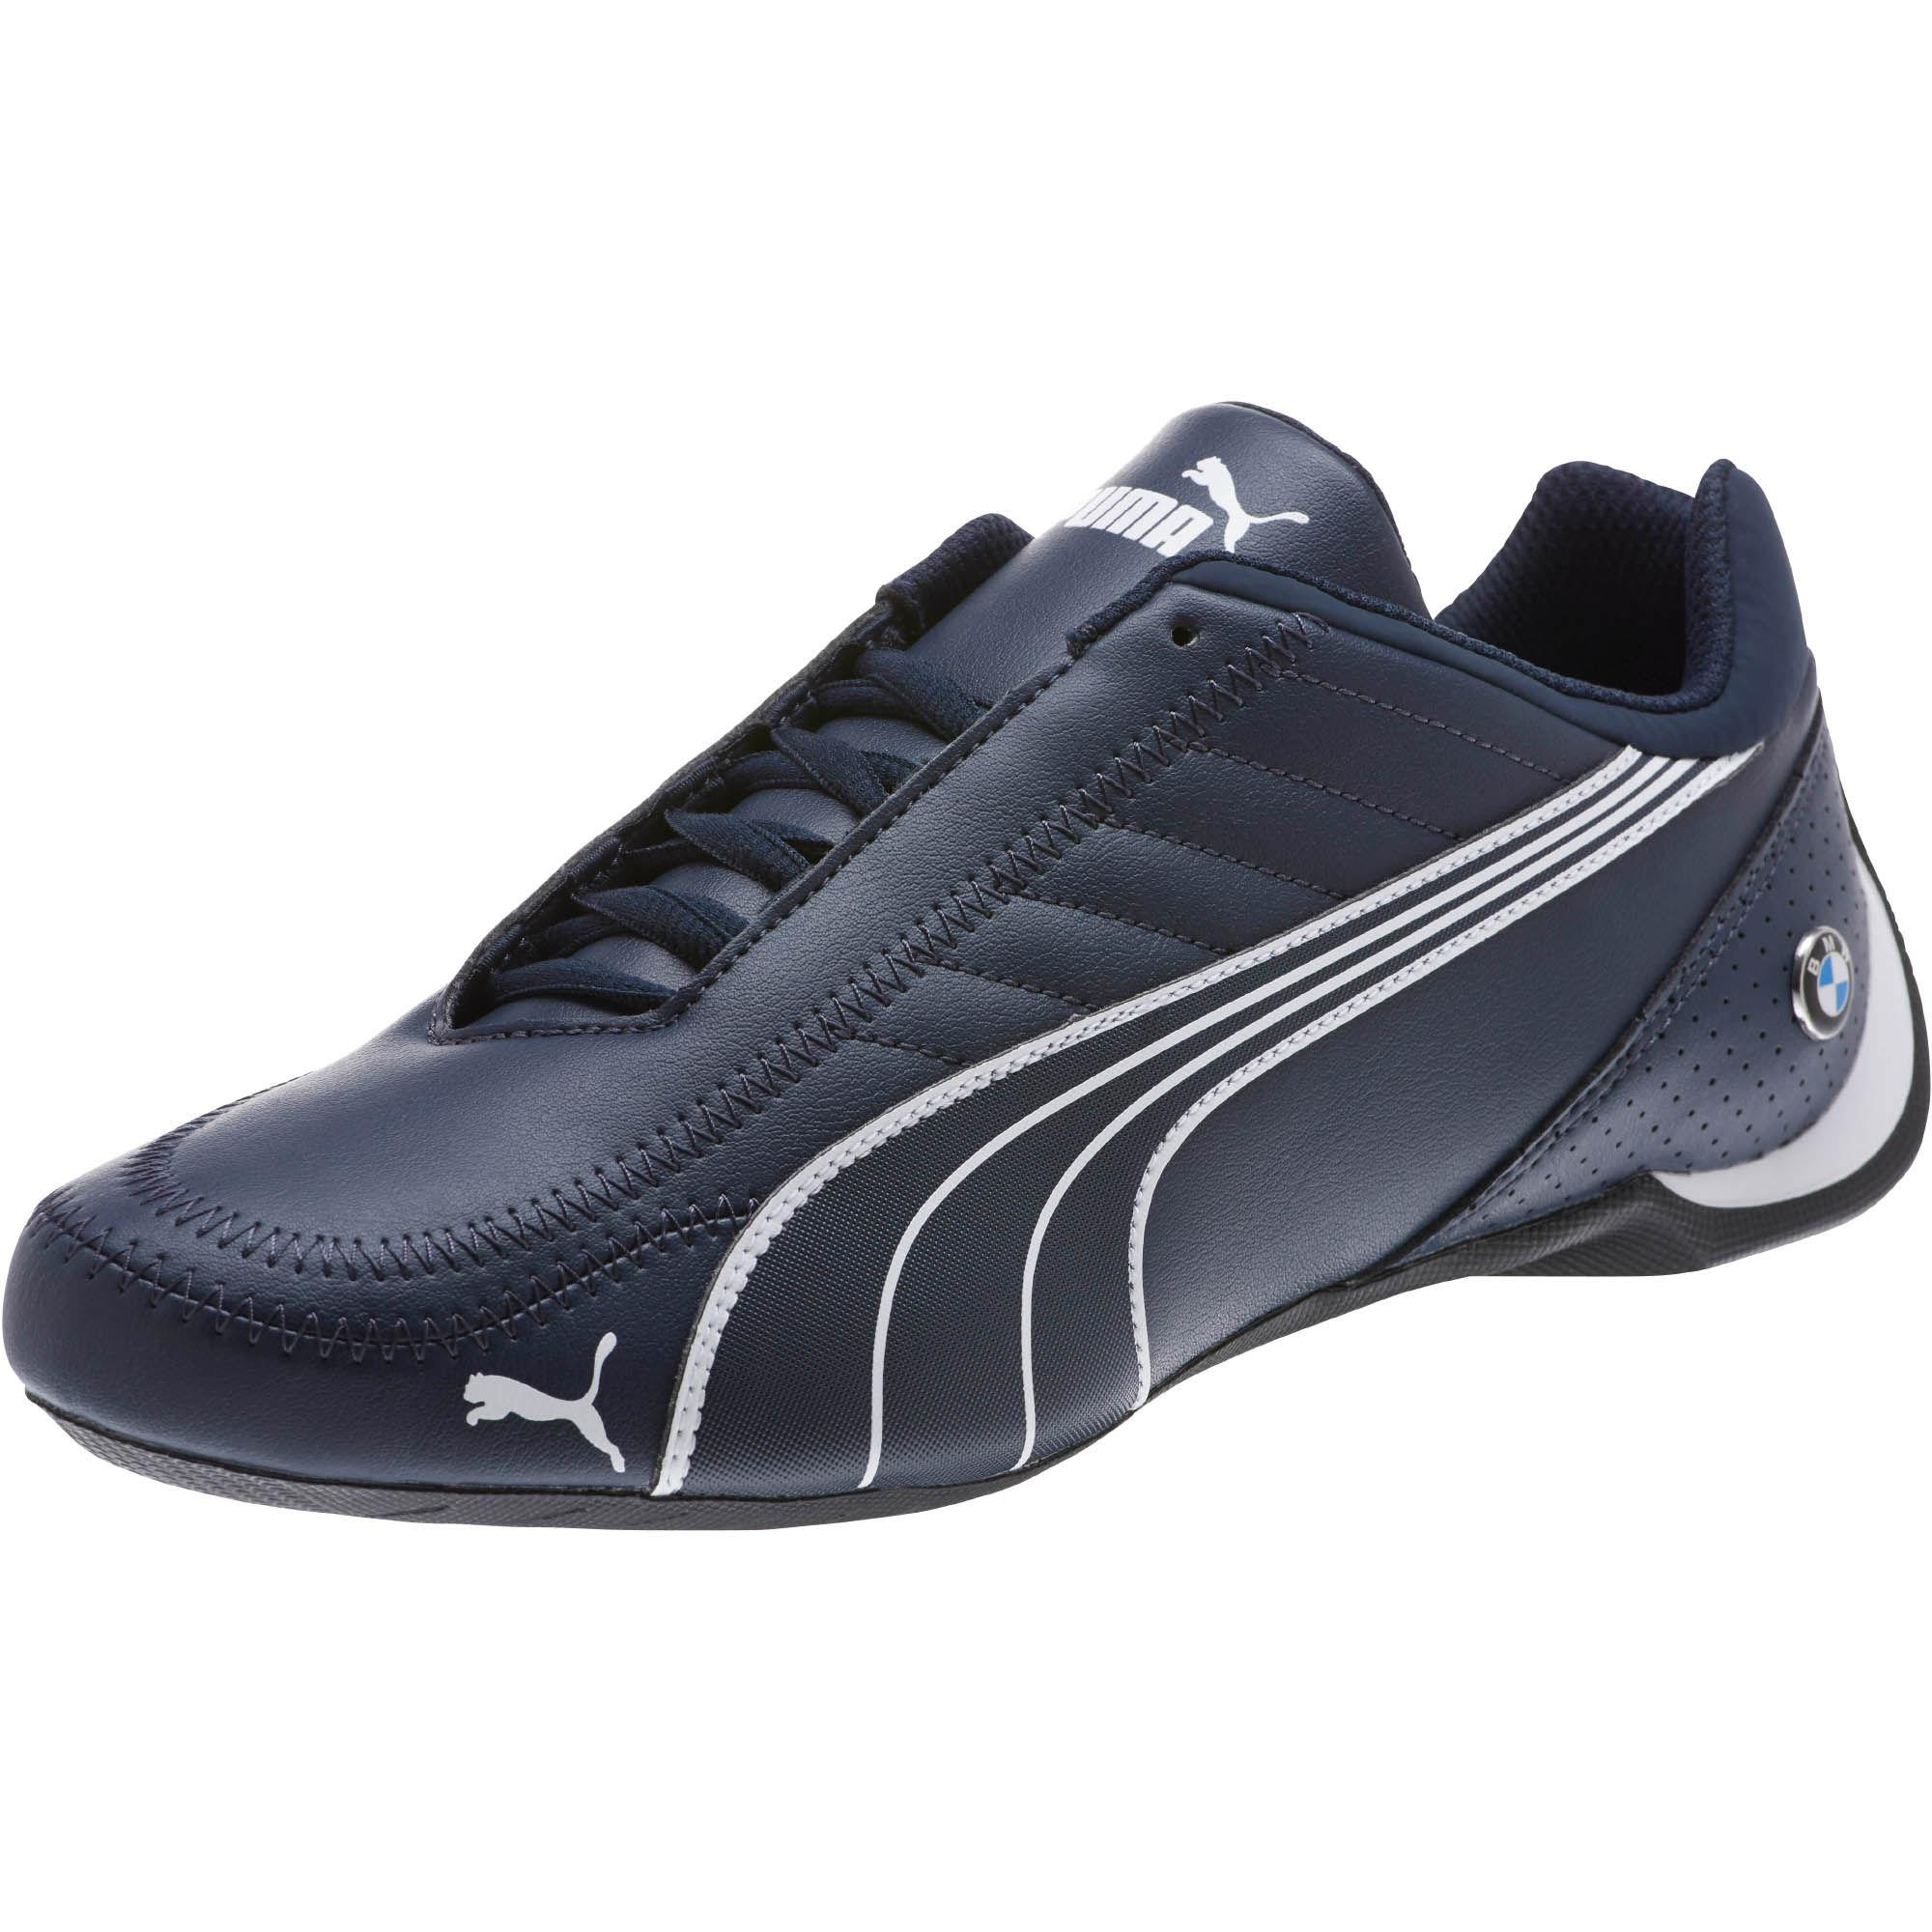 BUTY PUMA BMW FUTURE KART CAT 30621601 r 43